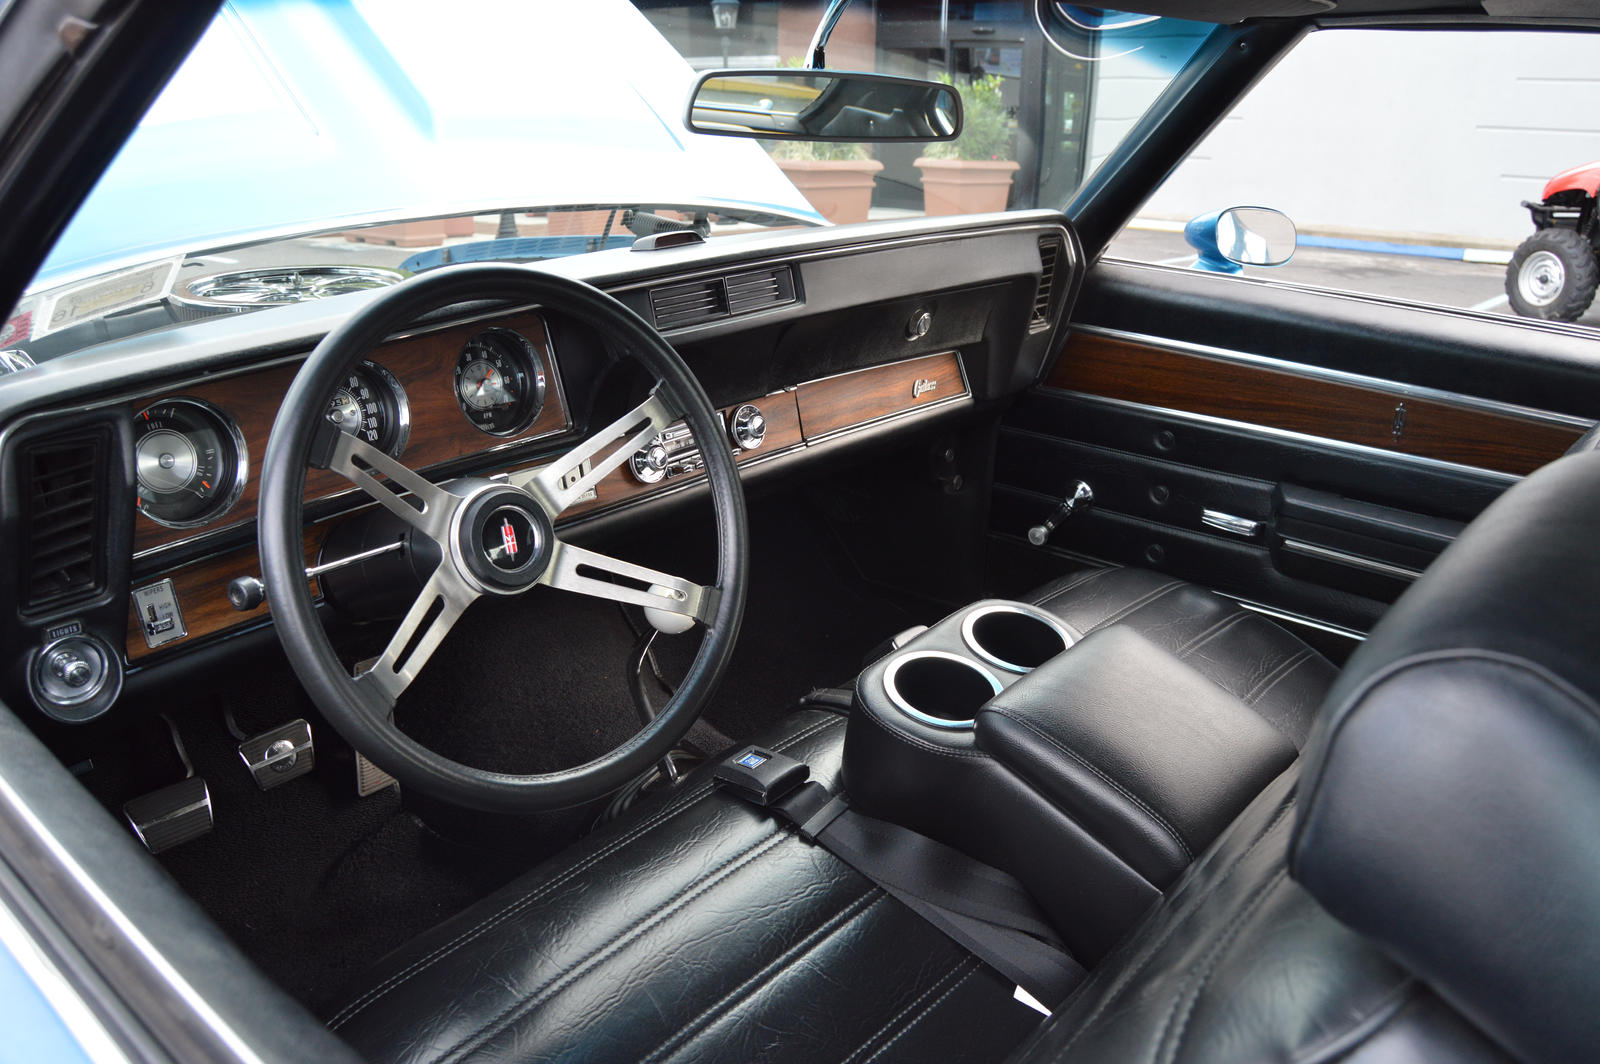 1972 Oldsmobile 442 W 30 Interior By Brooklyn47 On Deviantart